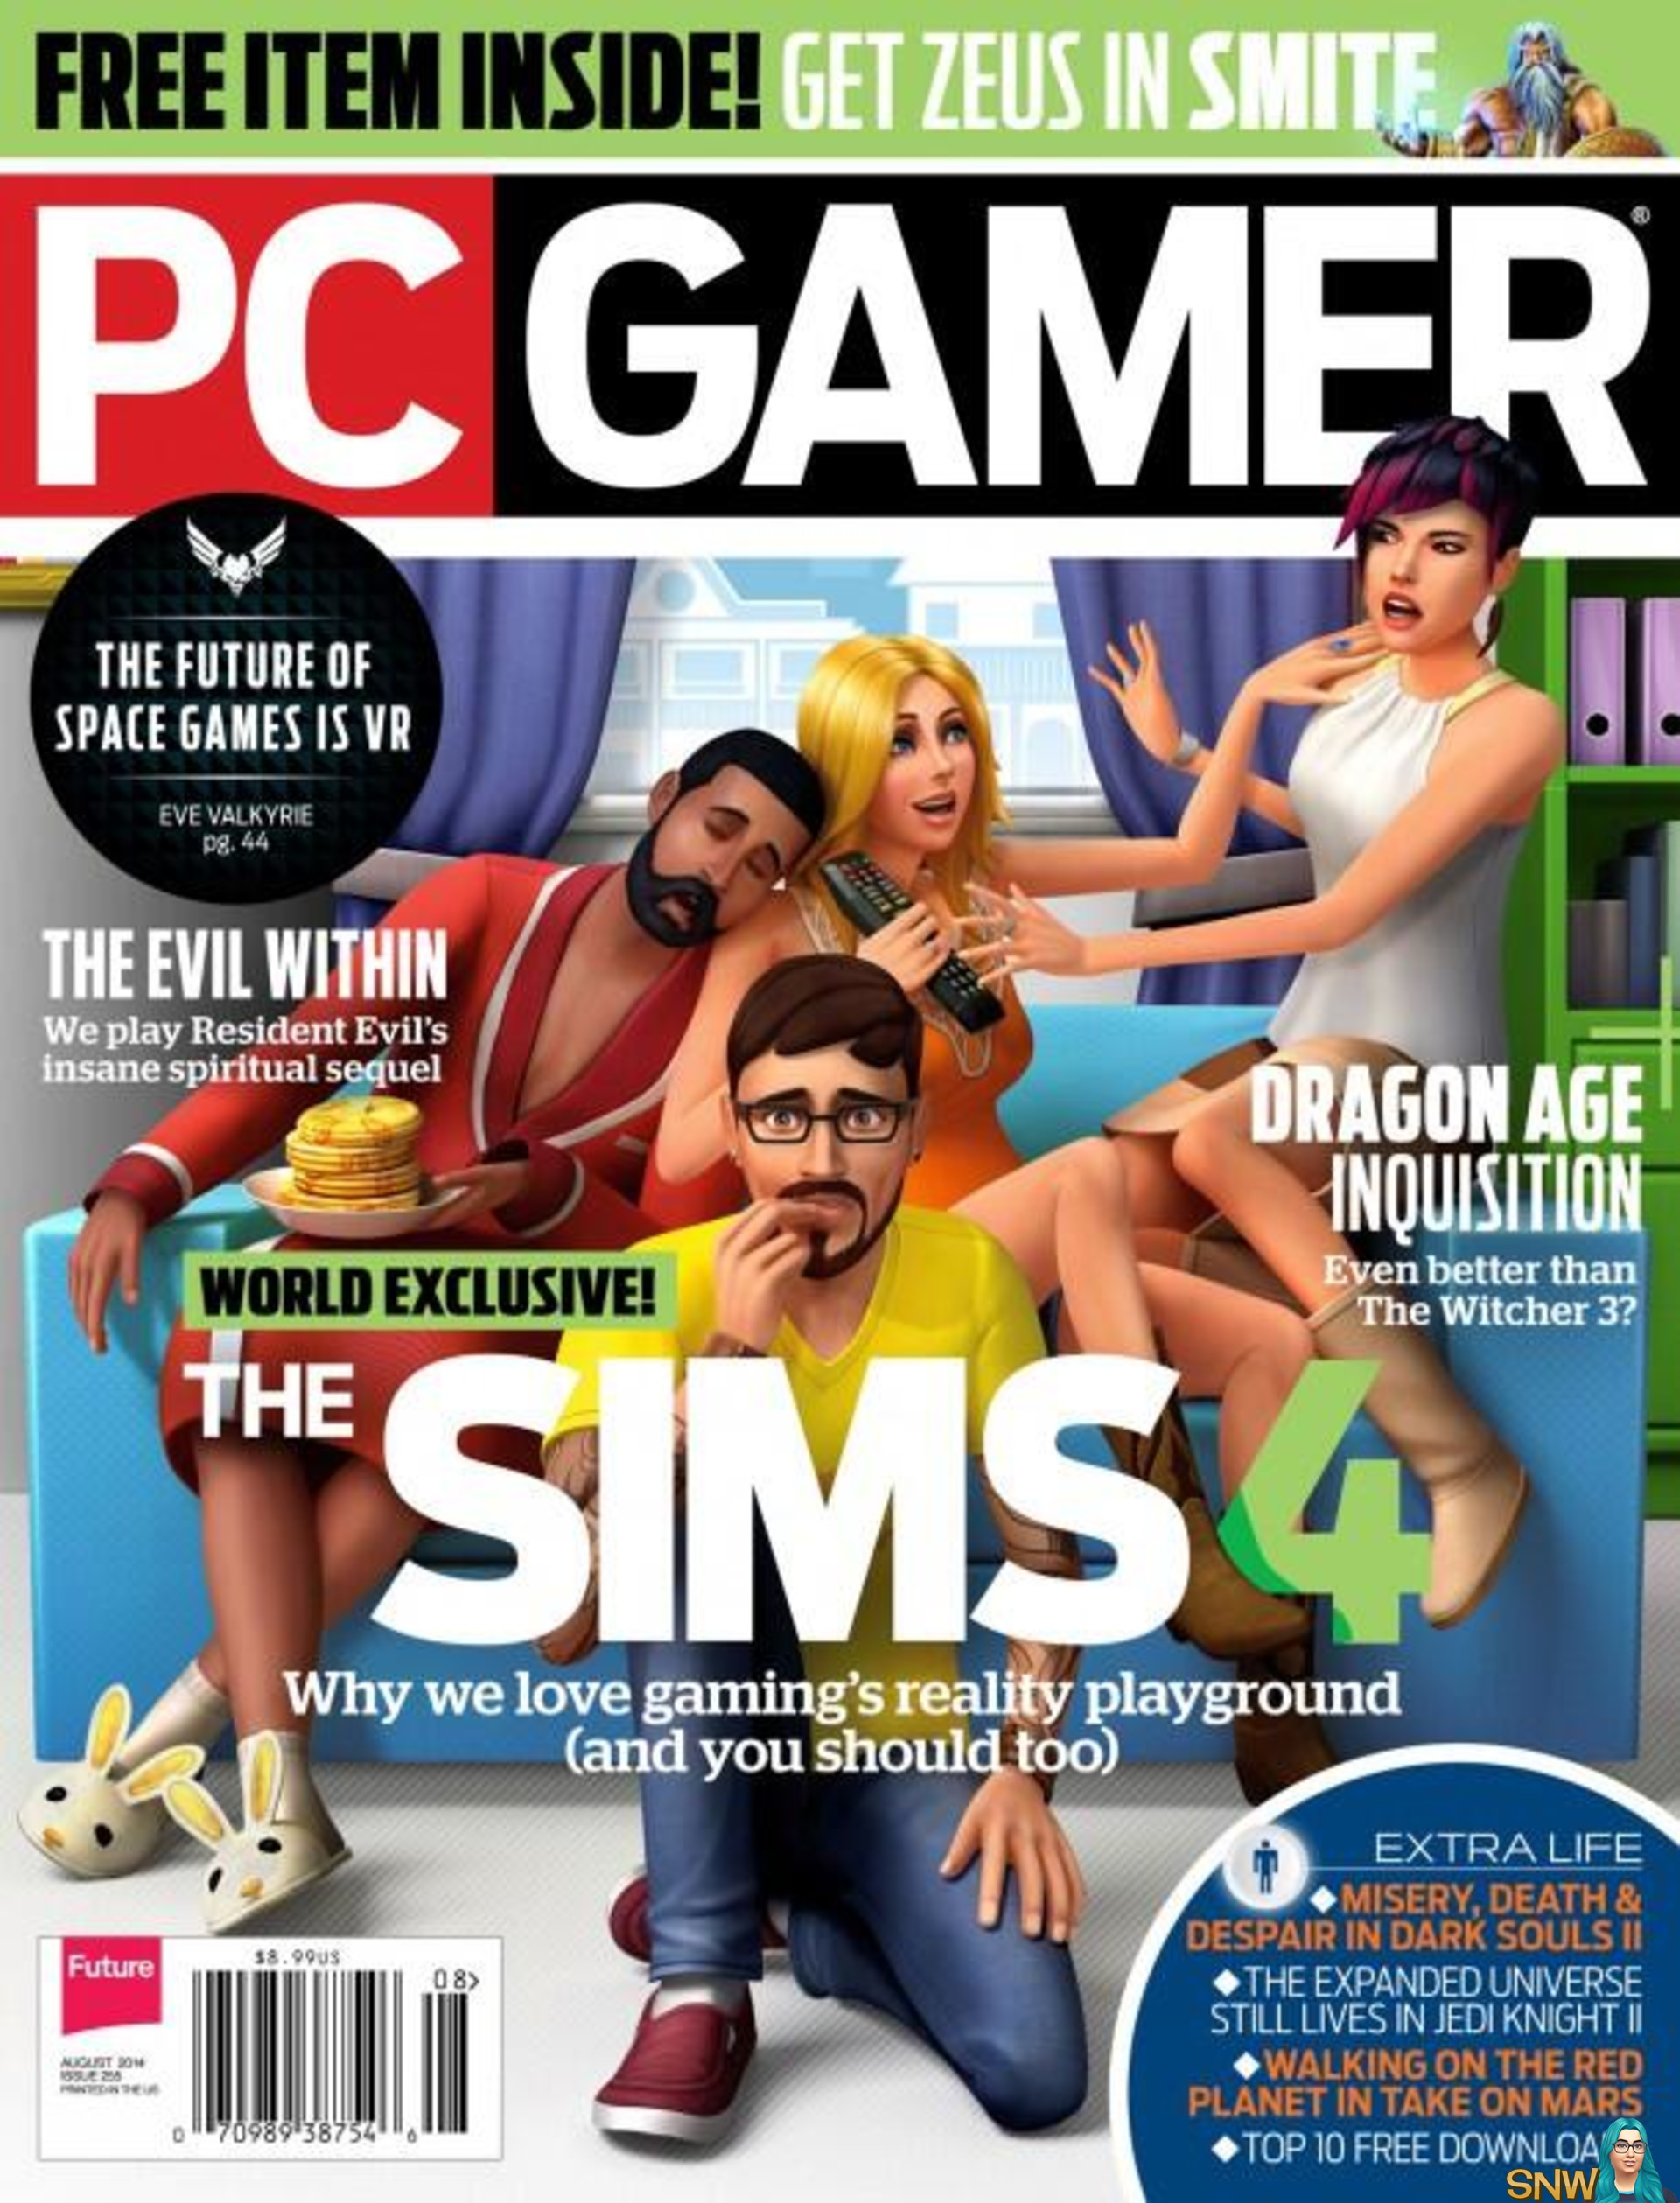 PC Gamer magazine! | SNW | SimsNetwork com